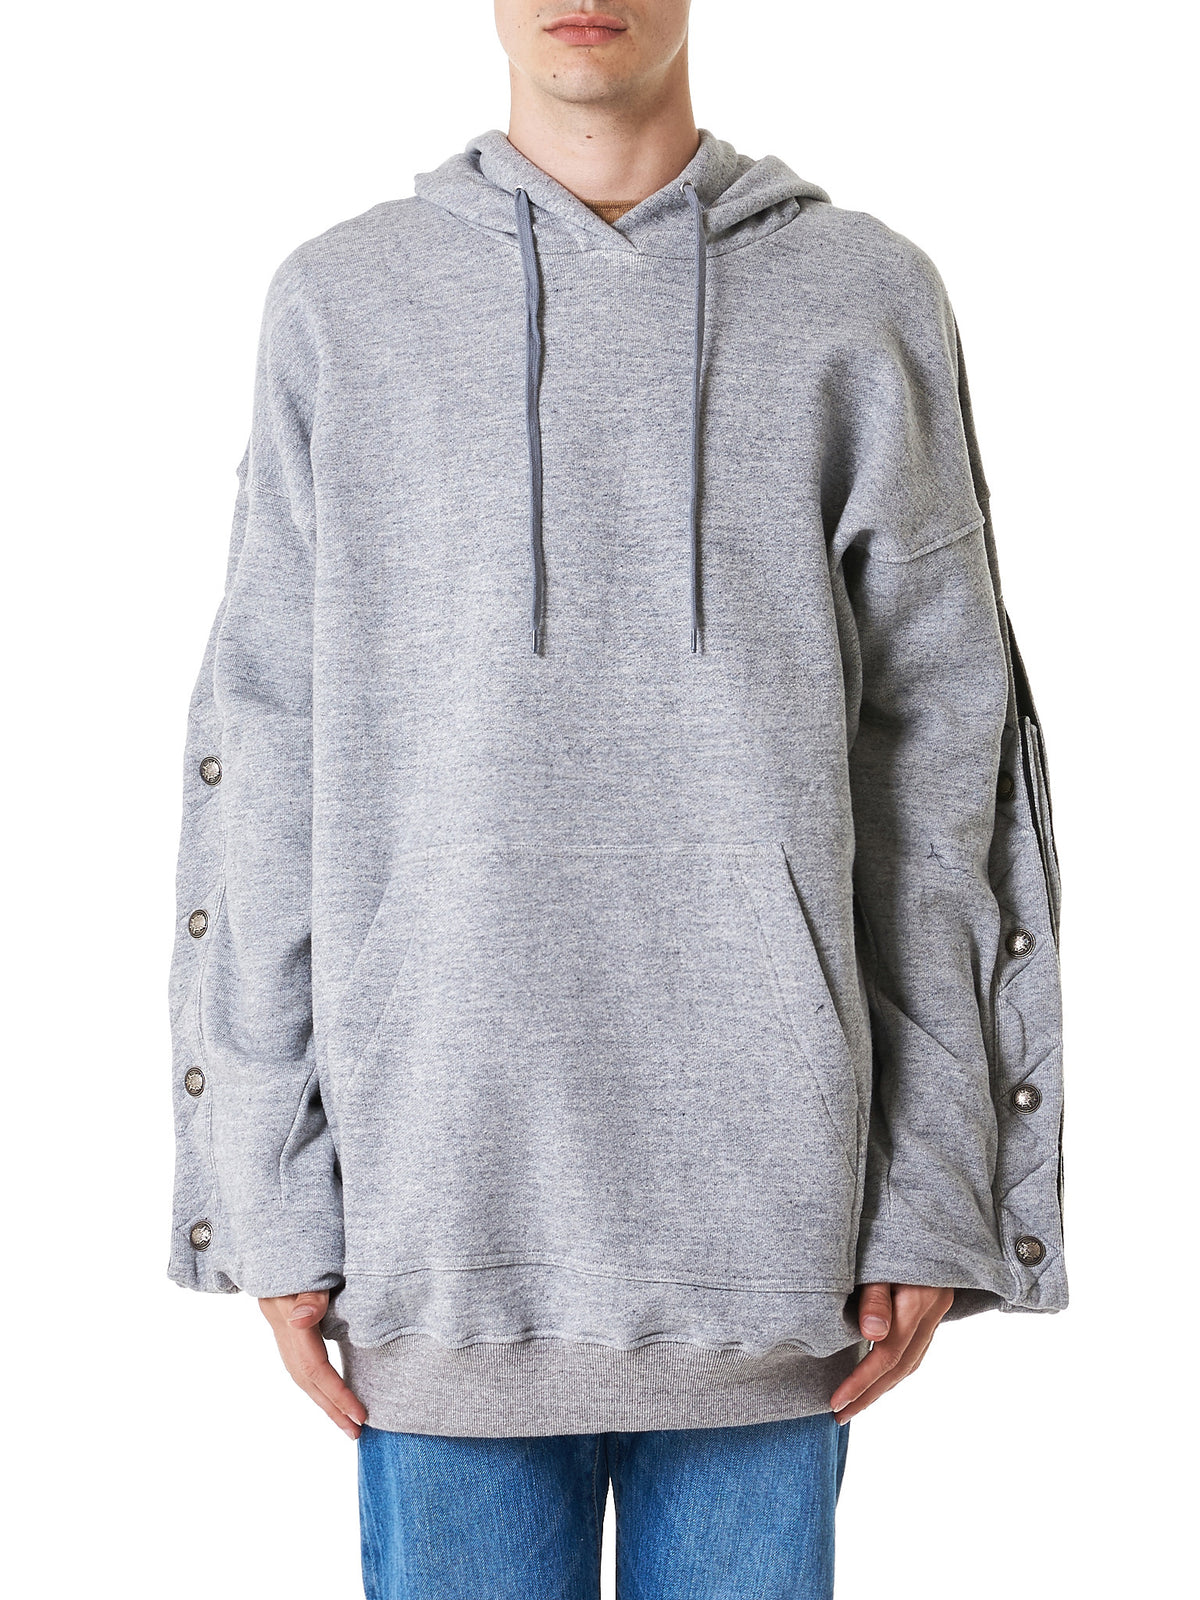 Structured Hooded Sweater (SWEAT7-S12-CC122-GREY)